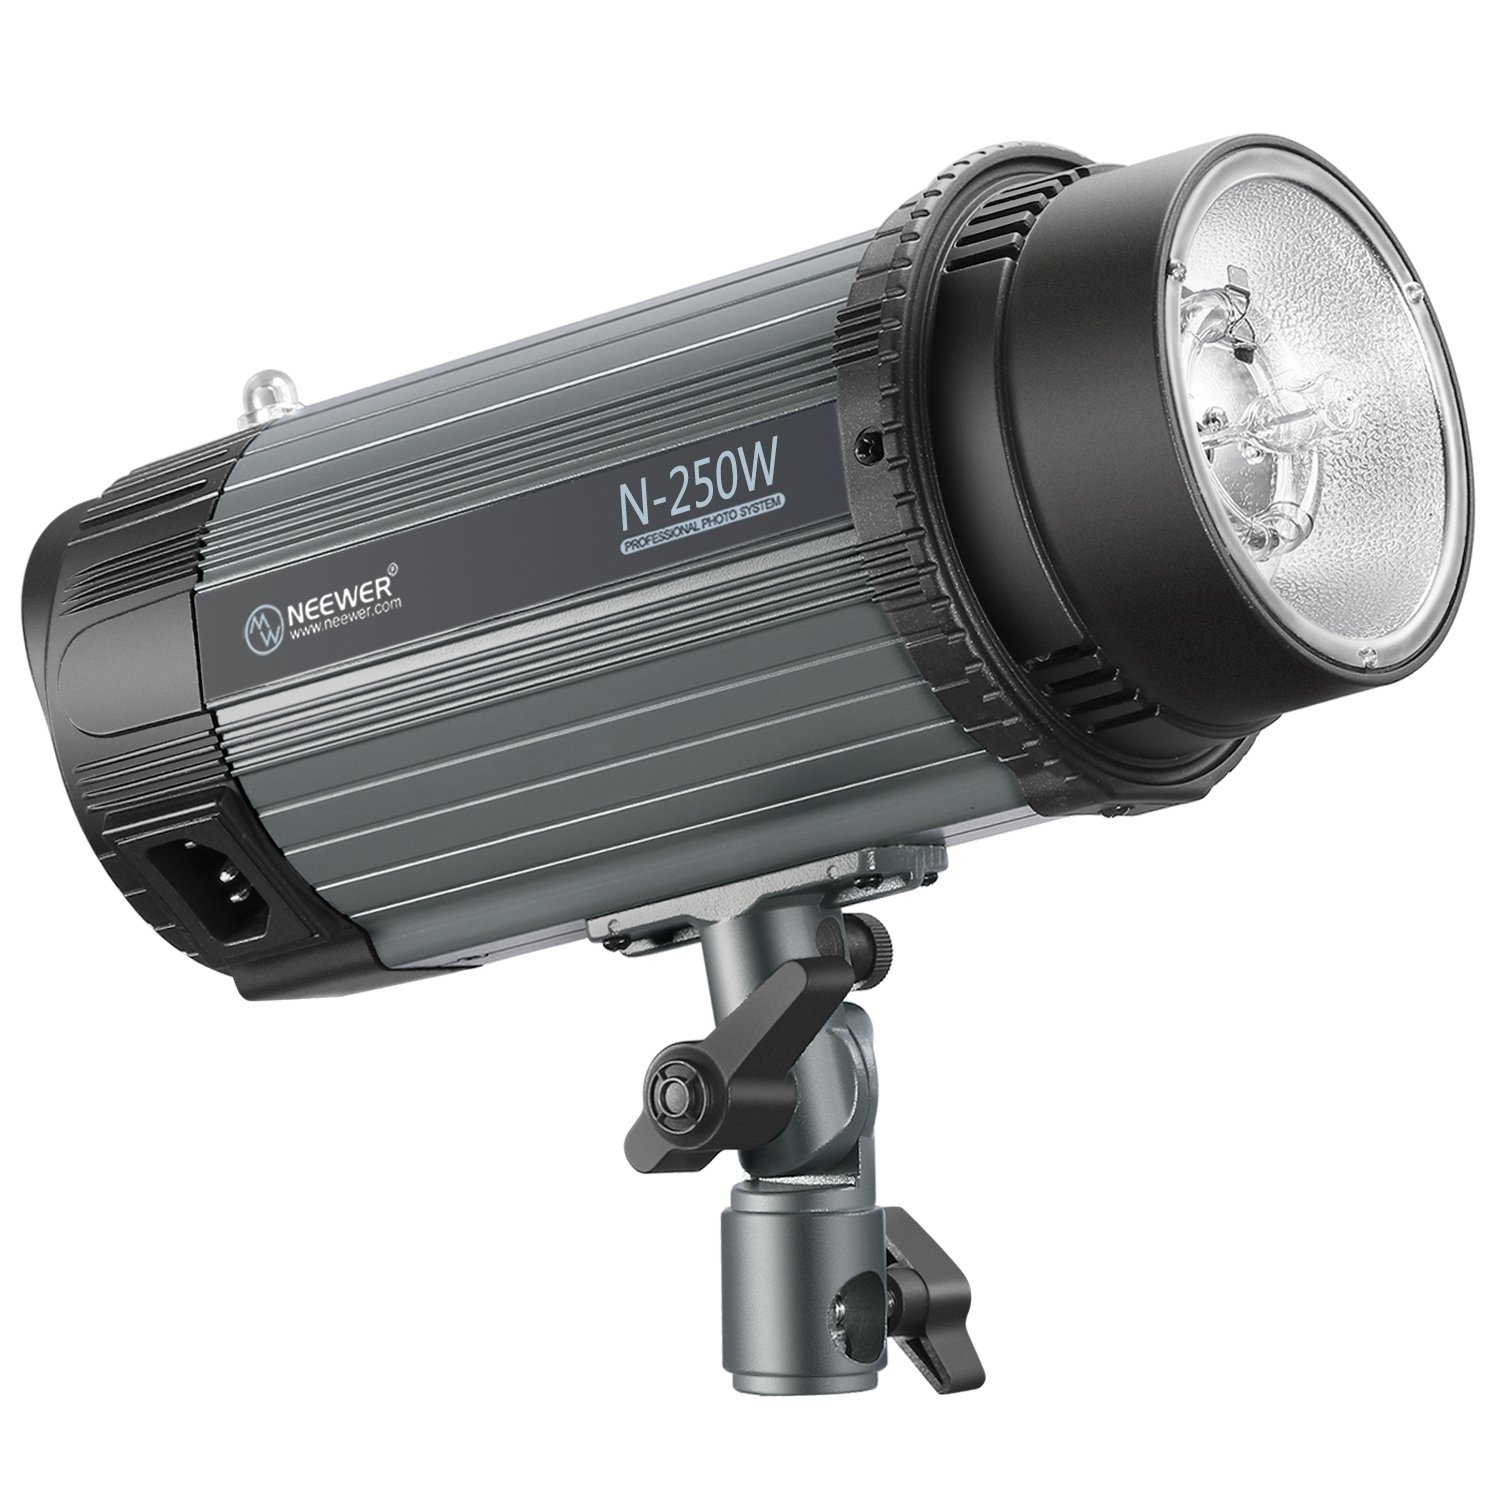 Neewer 250W 5600K Photo Studio Strobe Flash Light Monolight with Modeling Lamp, Aluminium Alloy Professional Speedlite for Indoor Studio Location Model Photography and Portrait Photography (N-250W) by Neewer